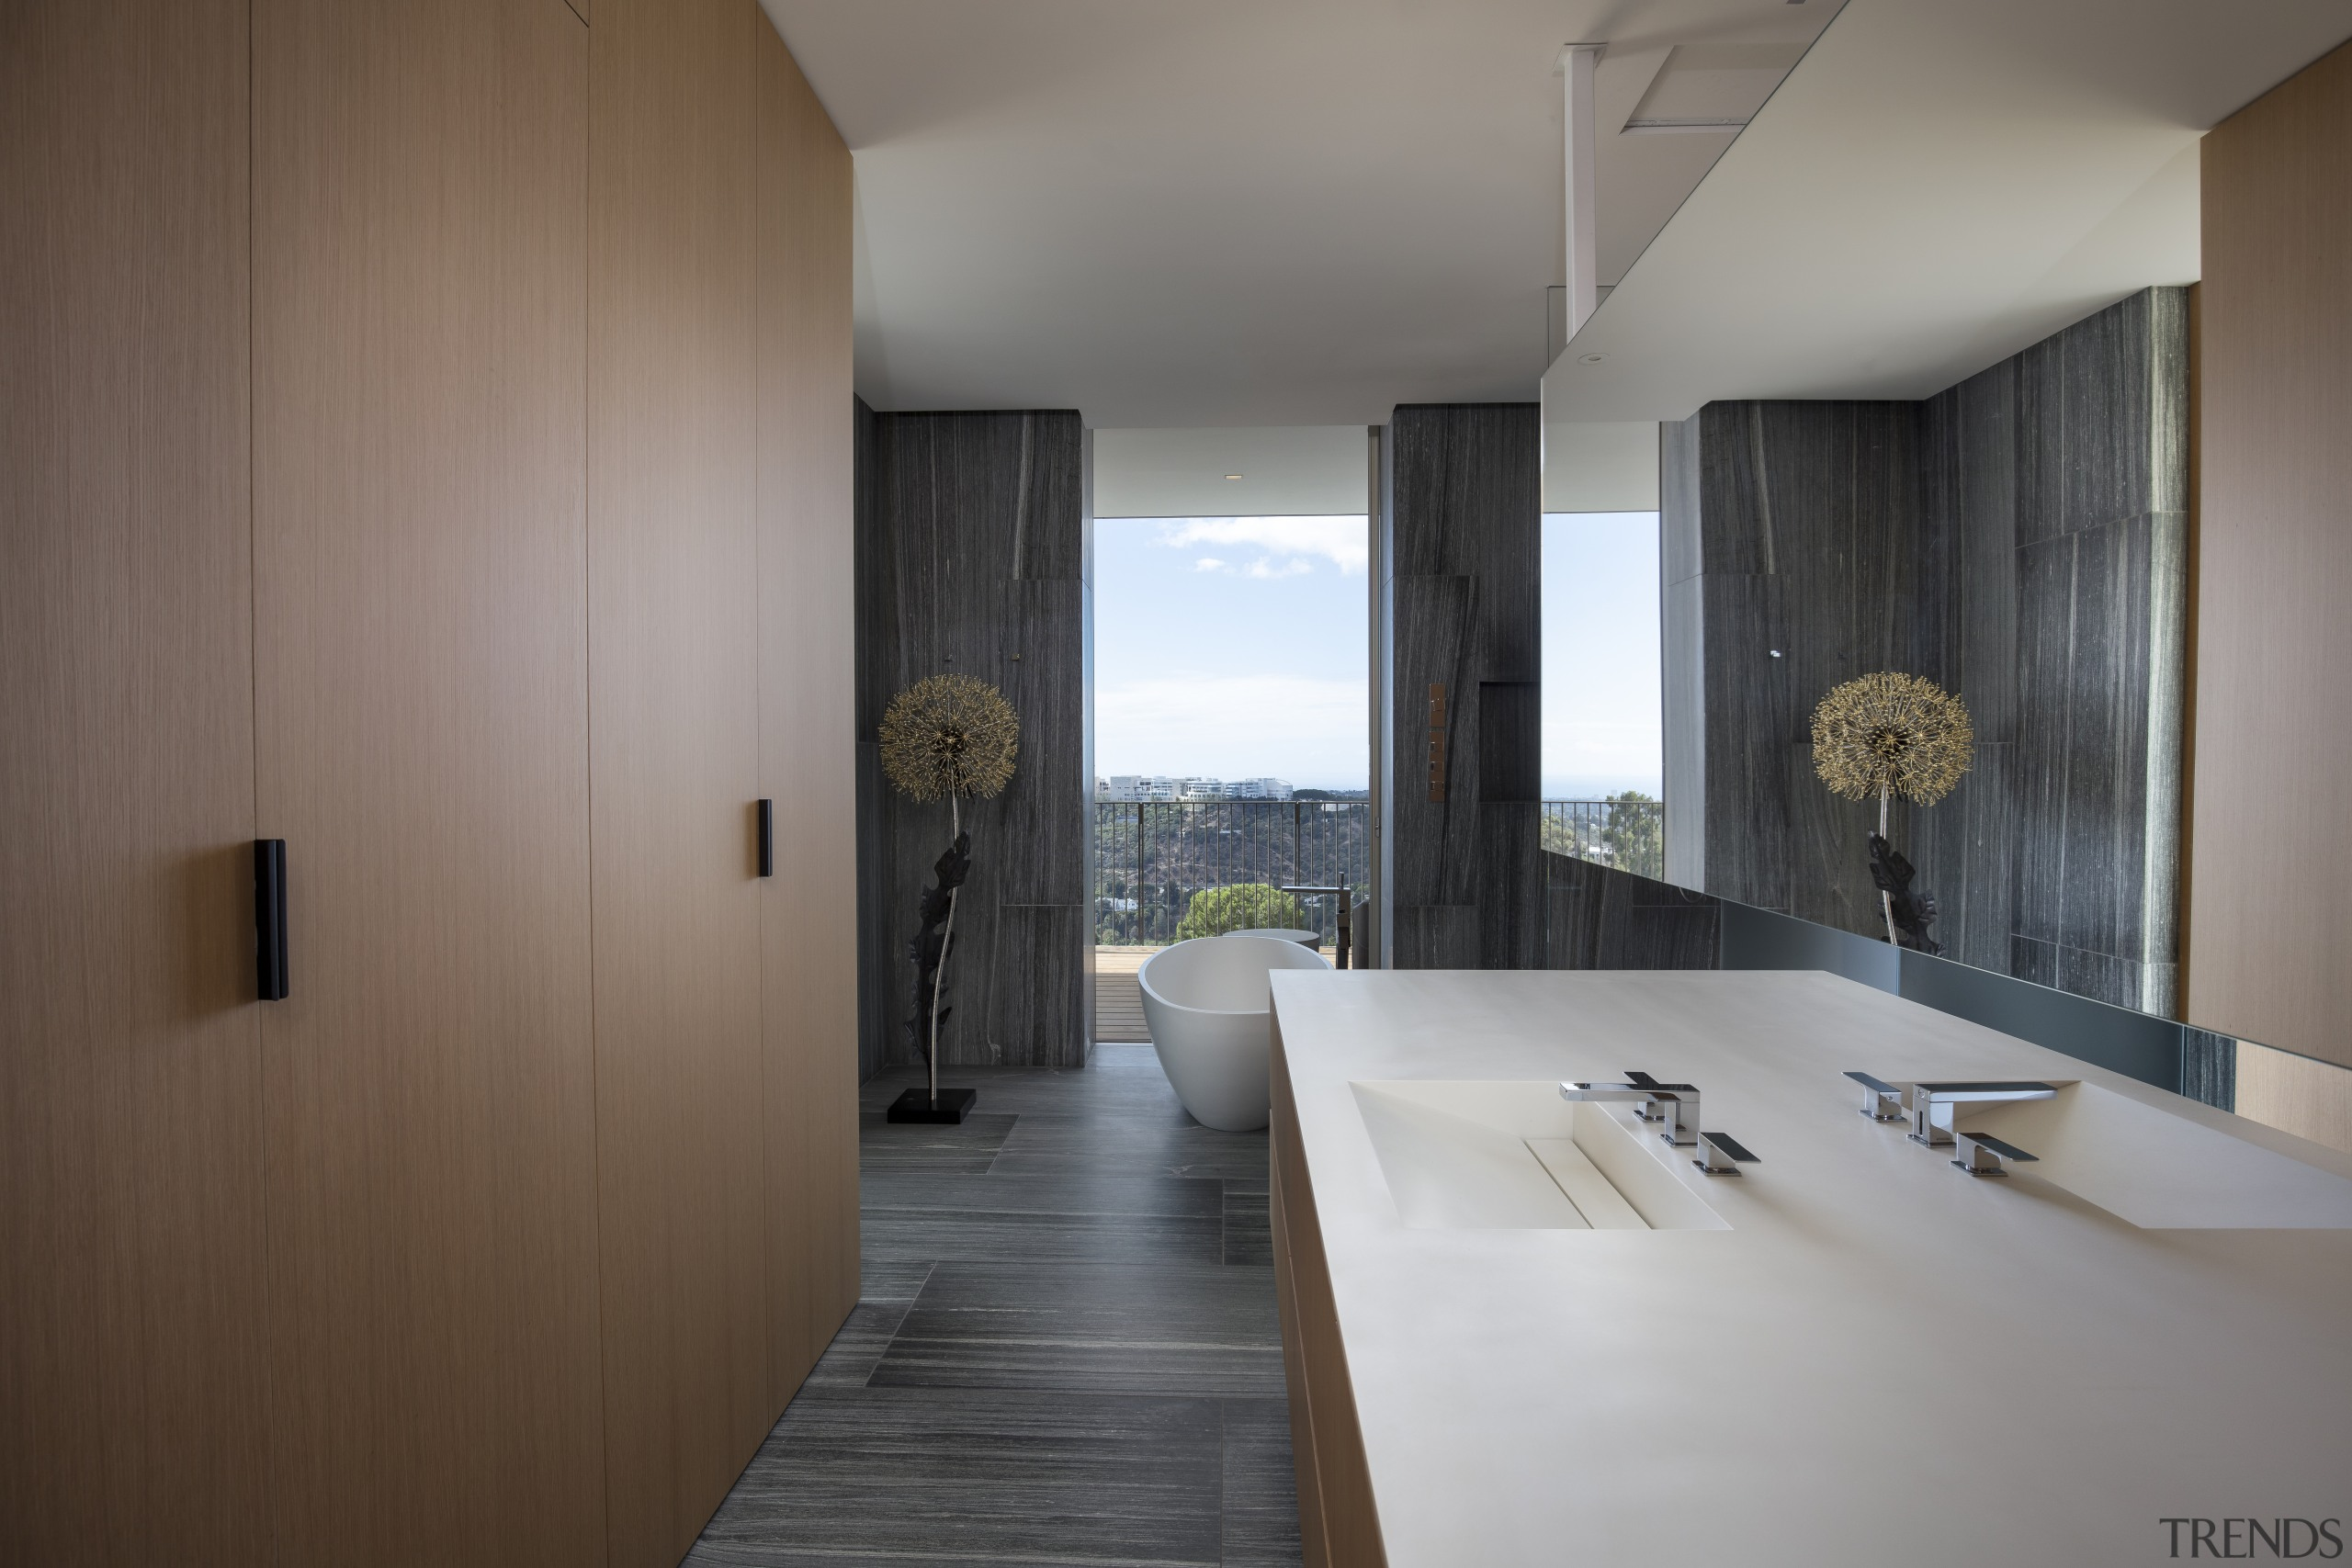 Luxury finishes, plenty of space and sweeping views house, architecture, guest suitedesign, floor, furniture, home, house, interior design, SPFa